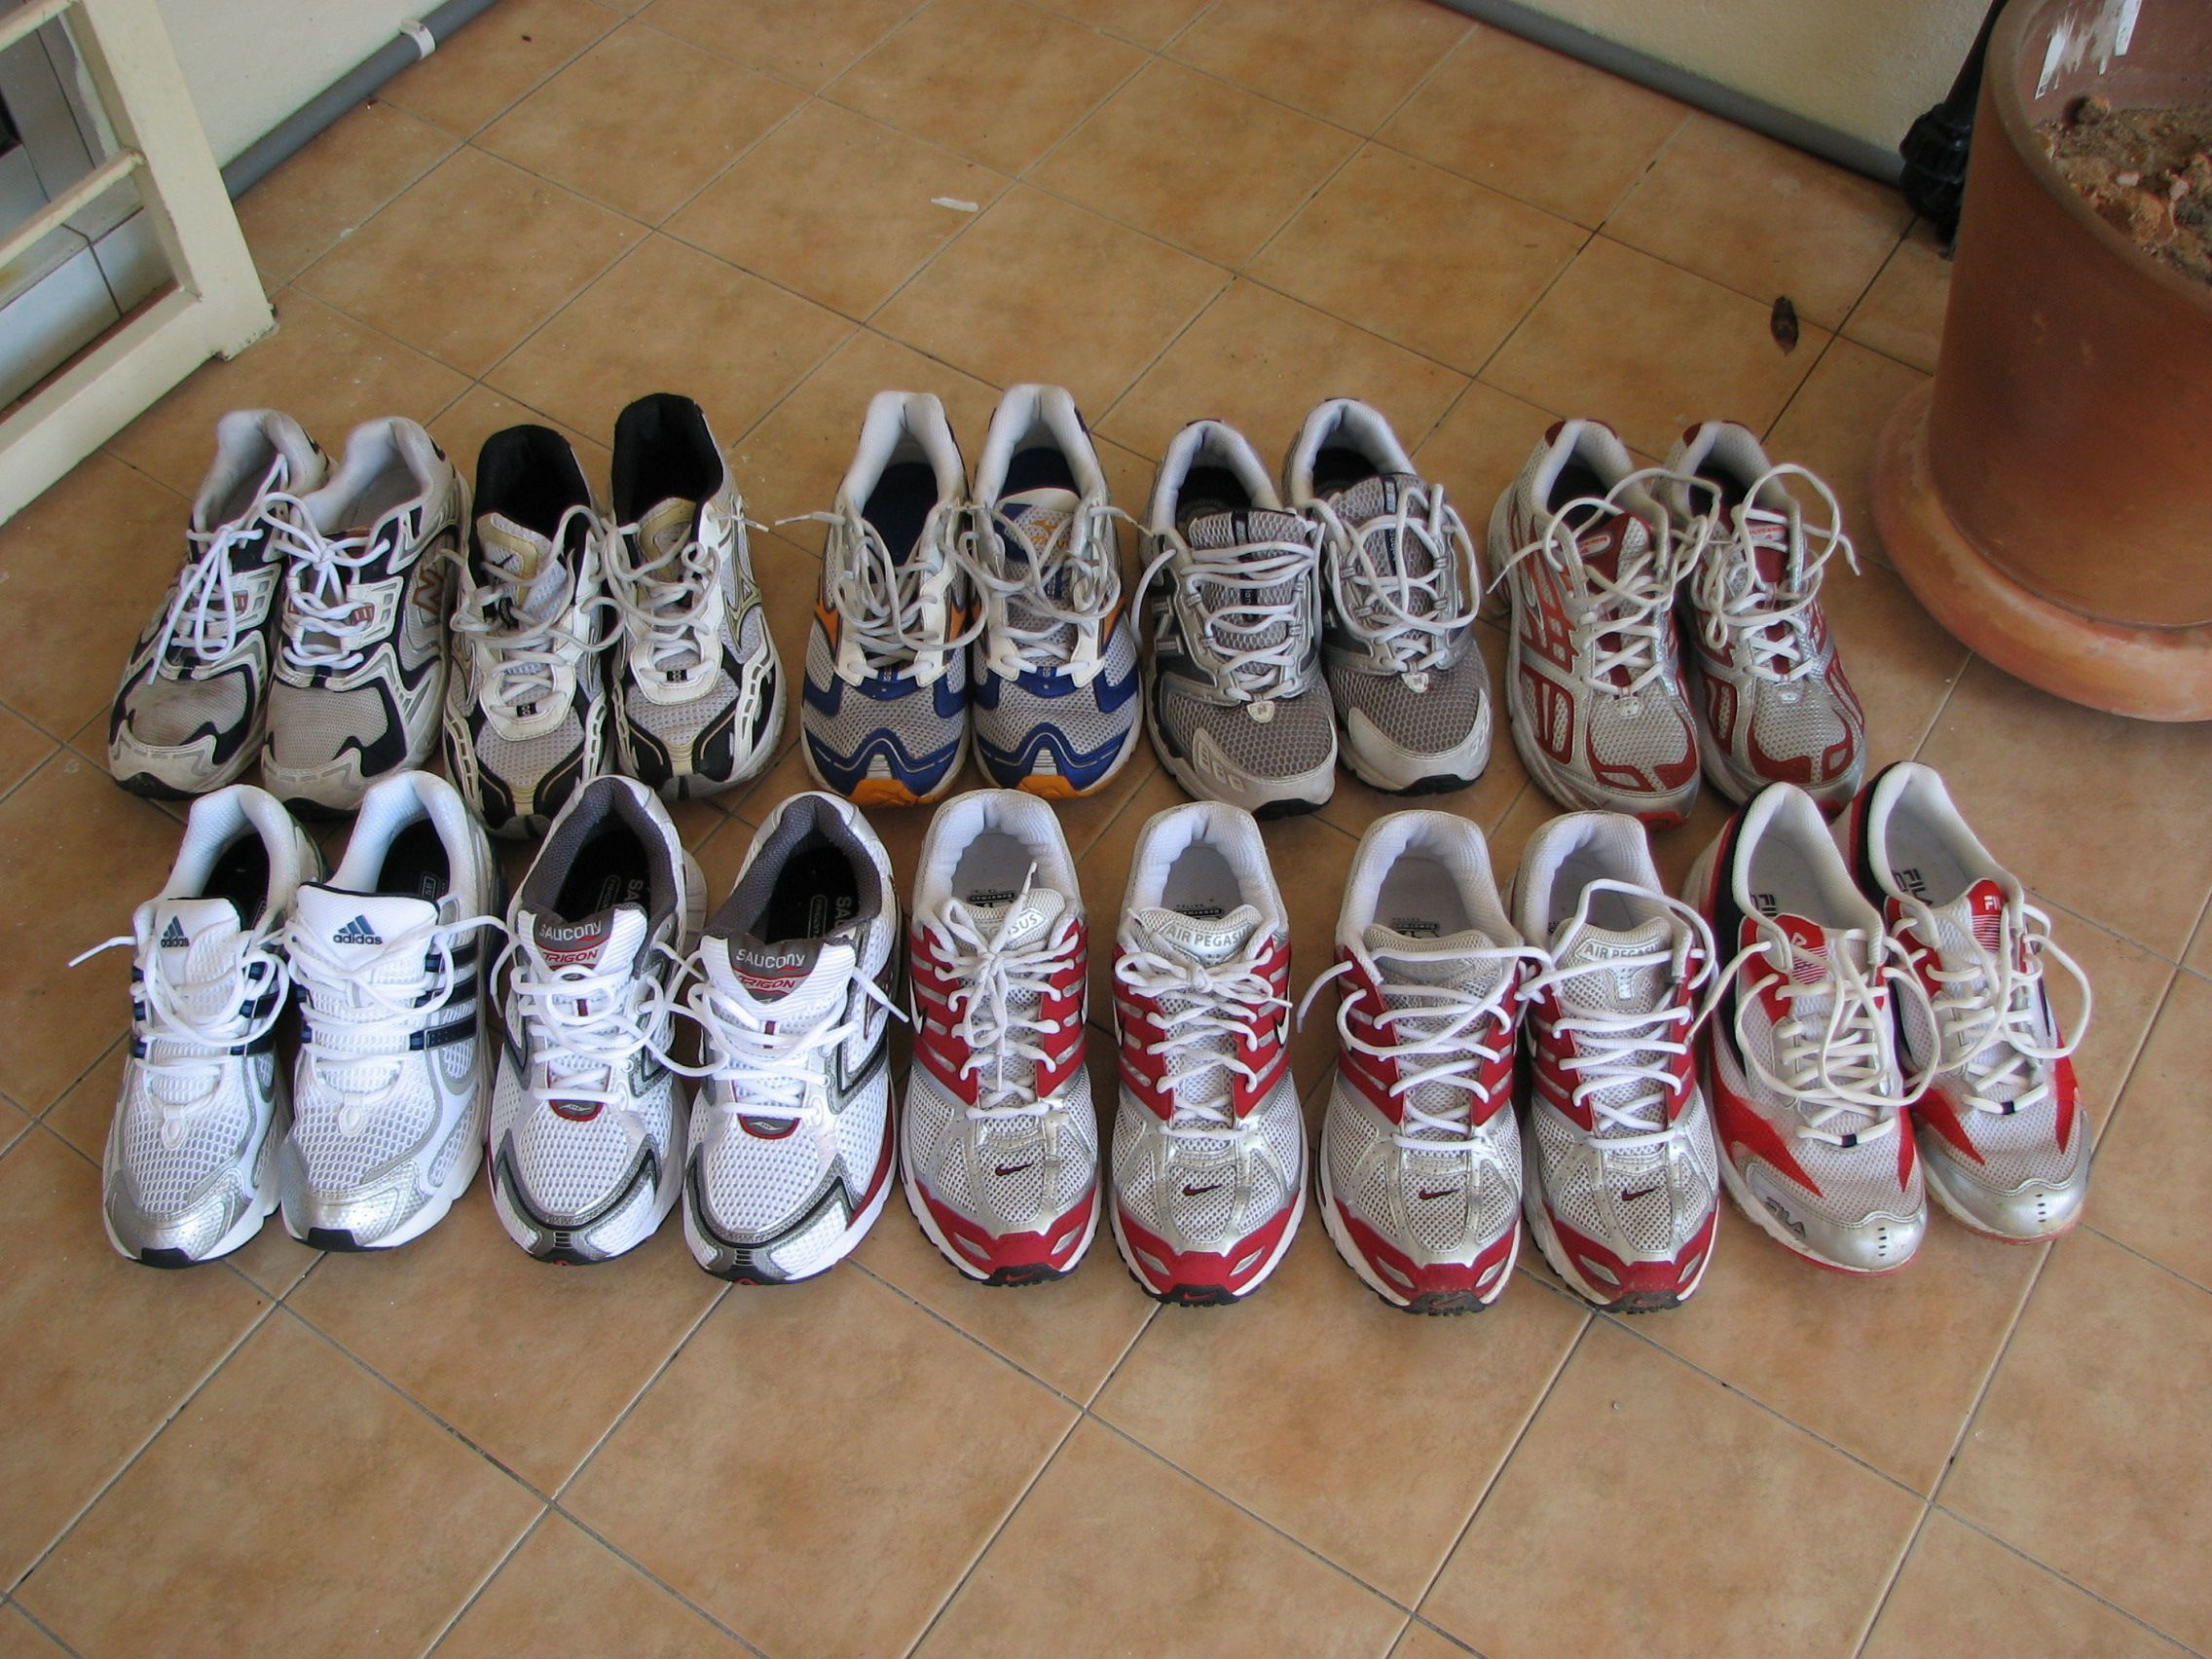 huge discount 2d1f3 c9d91 Old shoes, all donated. Mizuno Wave Precision 2, Fila K4, Brooks Glycerin  2, Nike Pegasus 2005, Saucony Trigon among them.